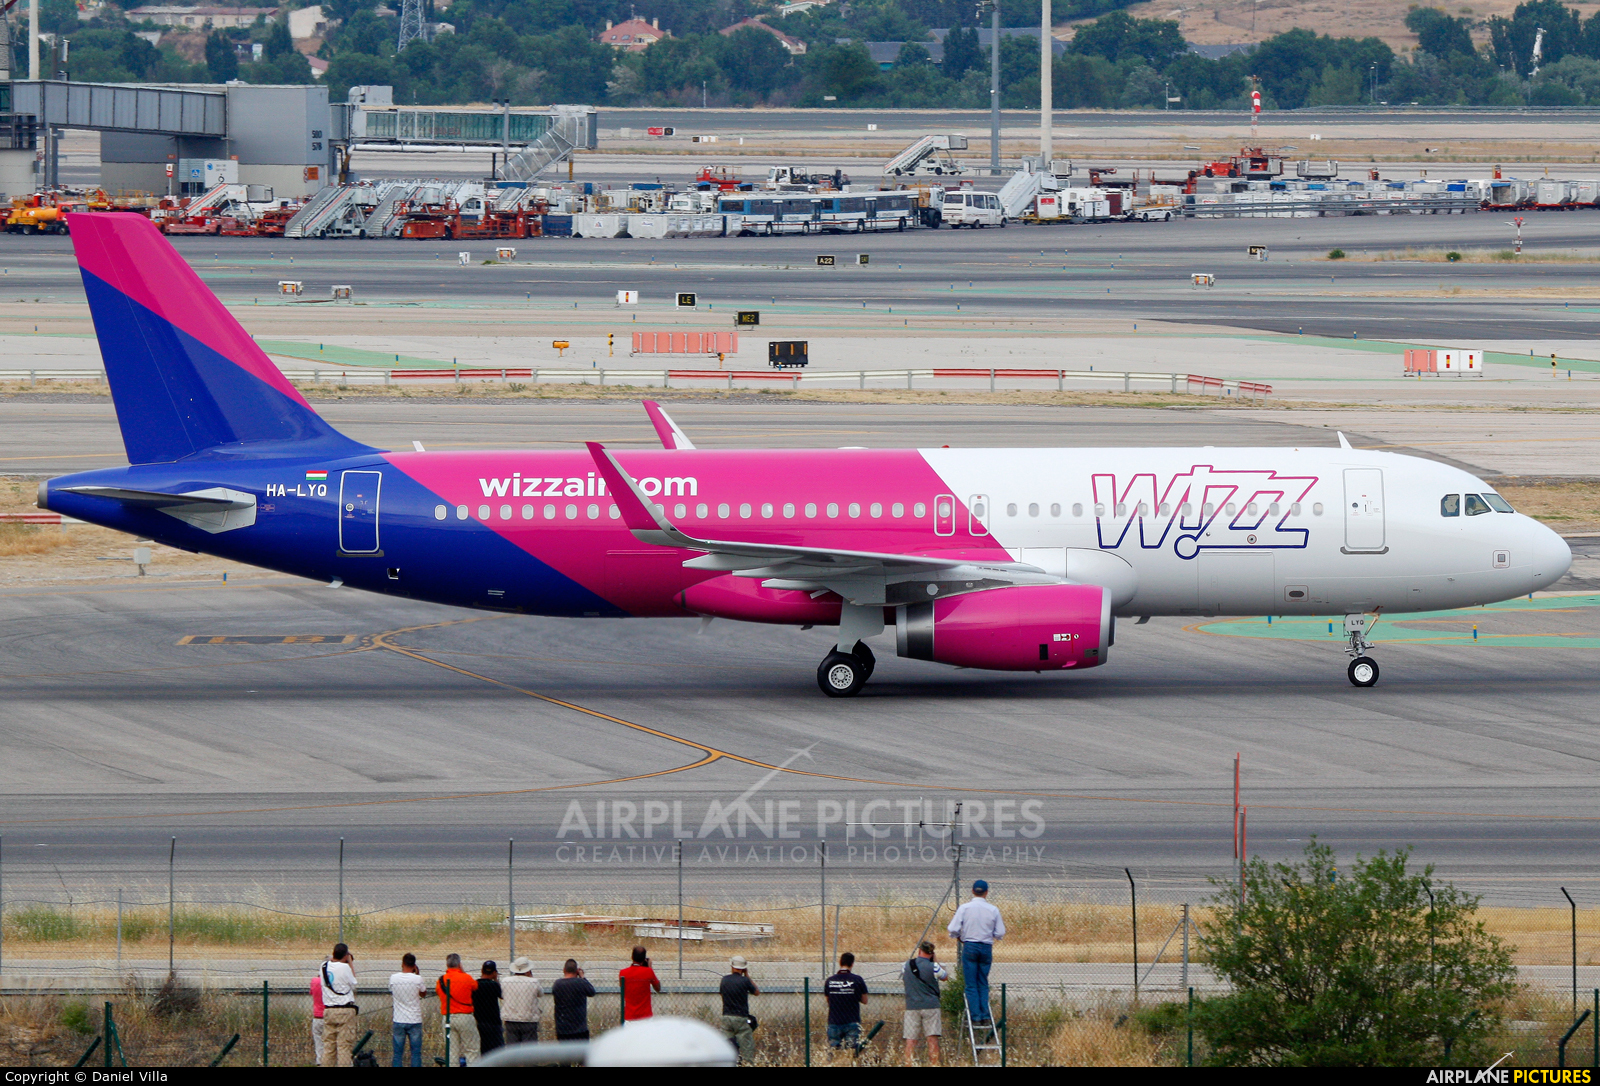 Wizz Air HA-LYQ aircraft at Madrid - Barajas